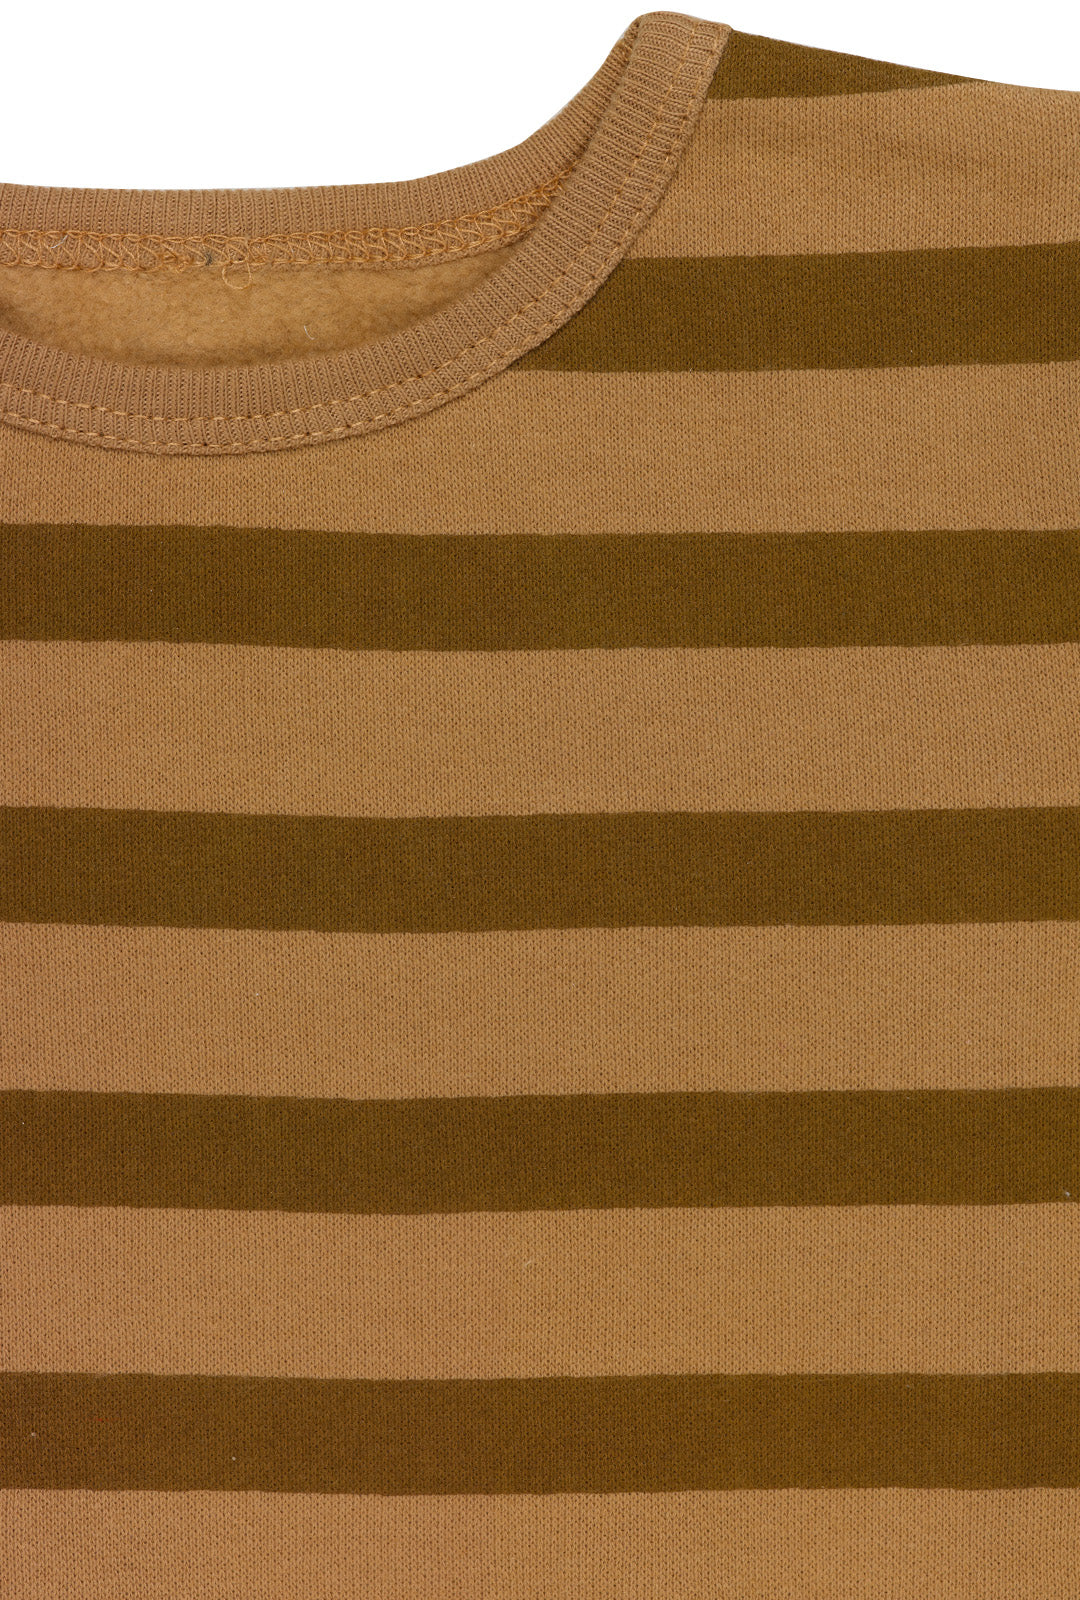 Brown Stripes Sweatshirt